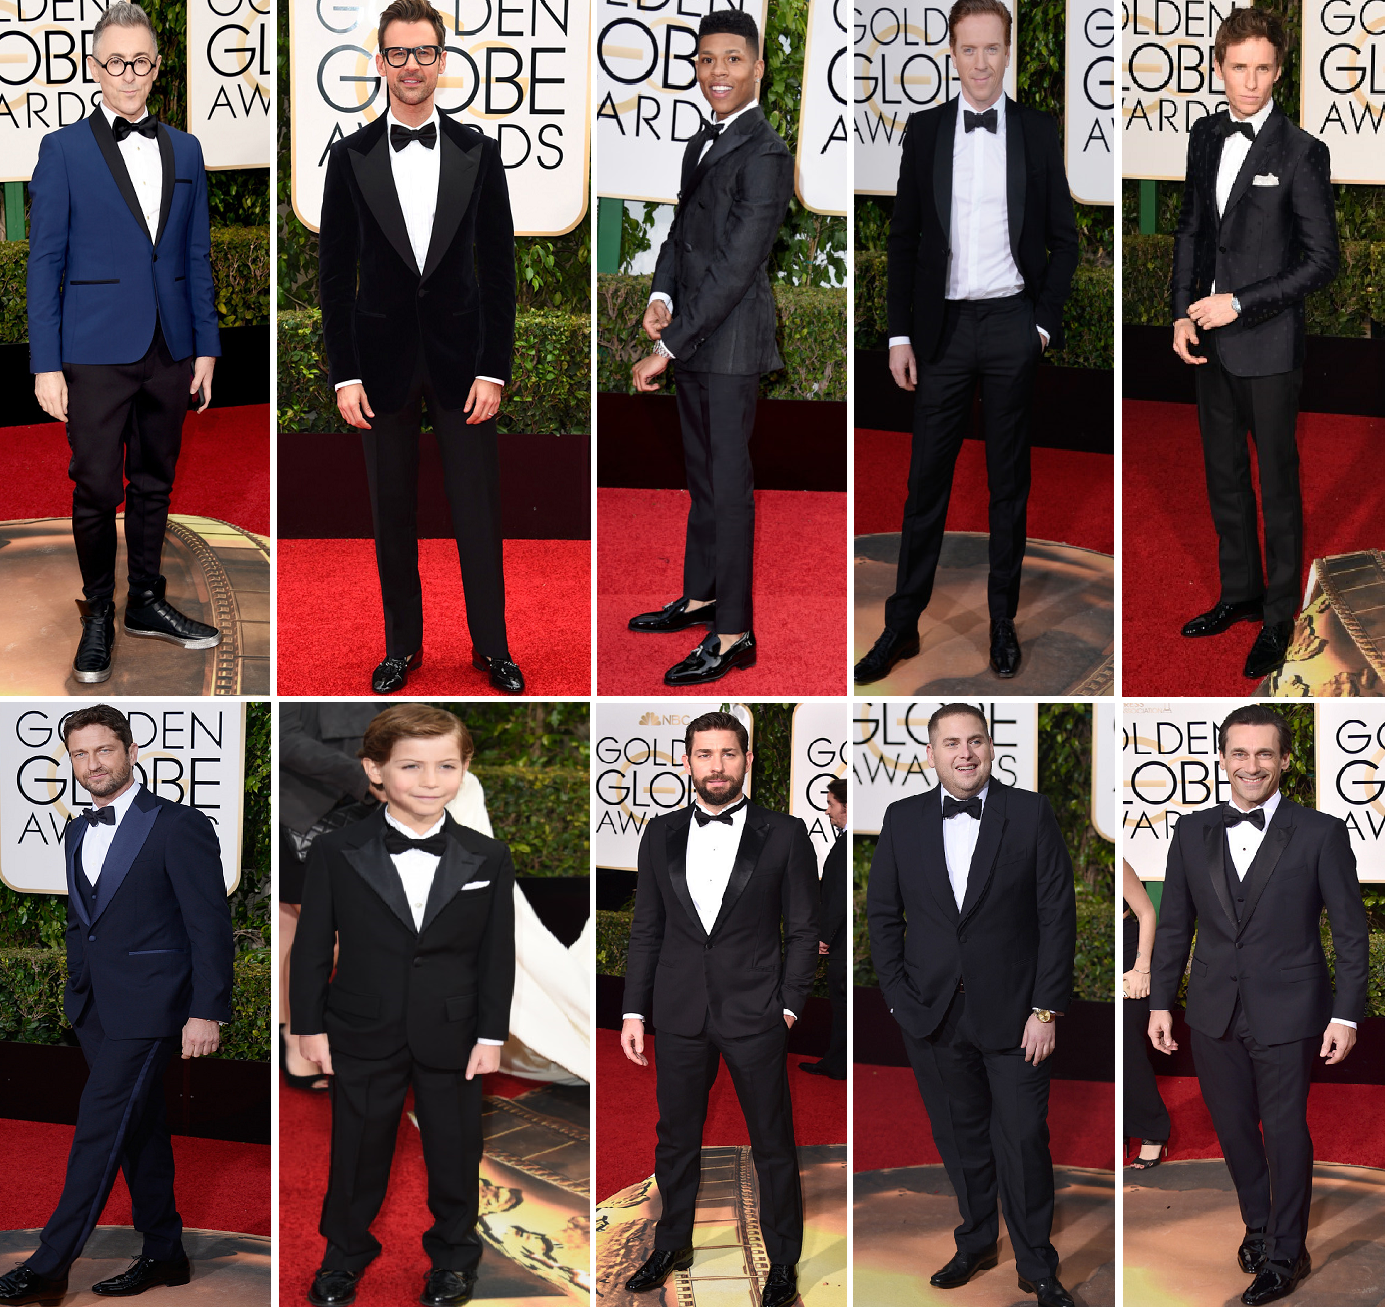 Alan Cumming, Brad Goreski, Empire's Bryshere Y. Gray, Damian Lewis, Eddie Redmayne in Gucci, cutie-ie Jacob Tremblay who was only matched by his very own father, John Krasinski, John Hill and Jon Hamm wowed in the tailored pieces